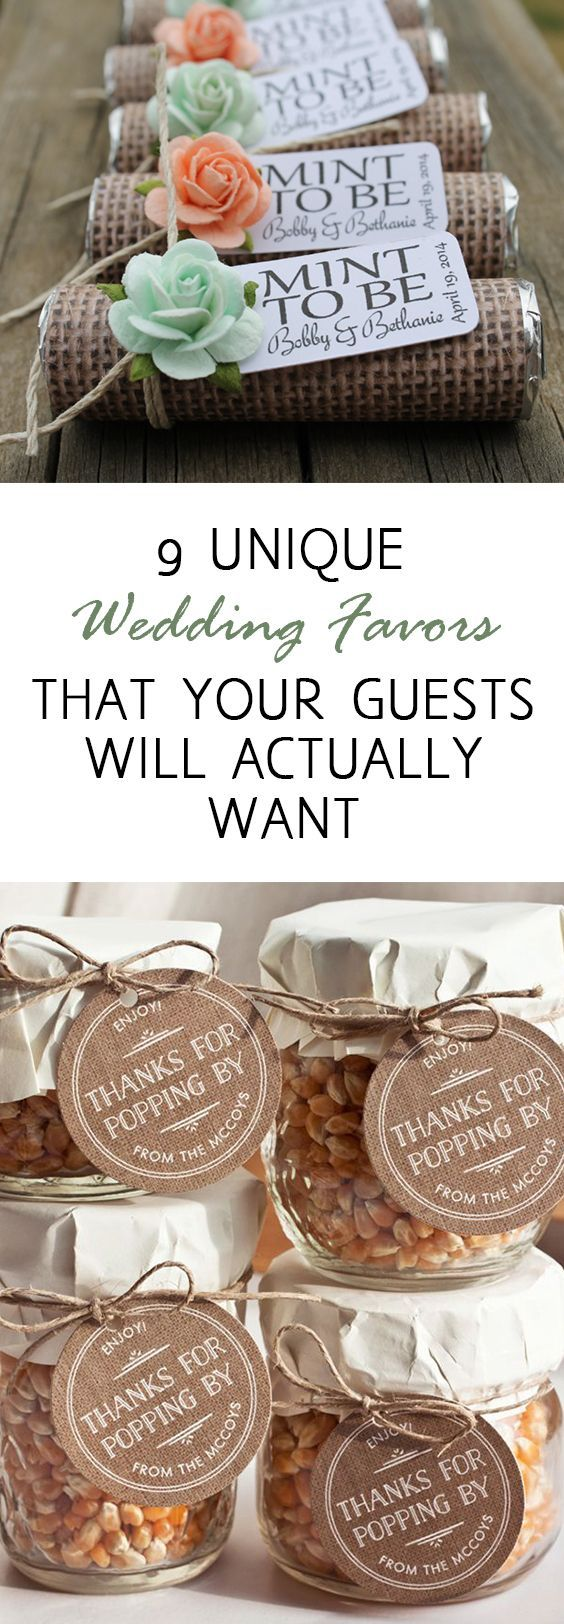 191 best Wedding Favors images on Pinterest | Wedding keepsakes ...